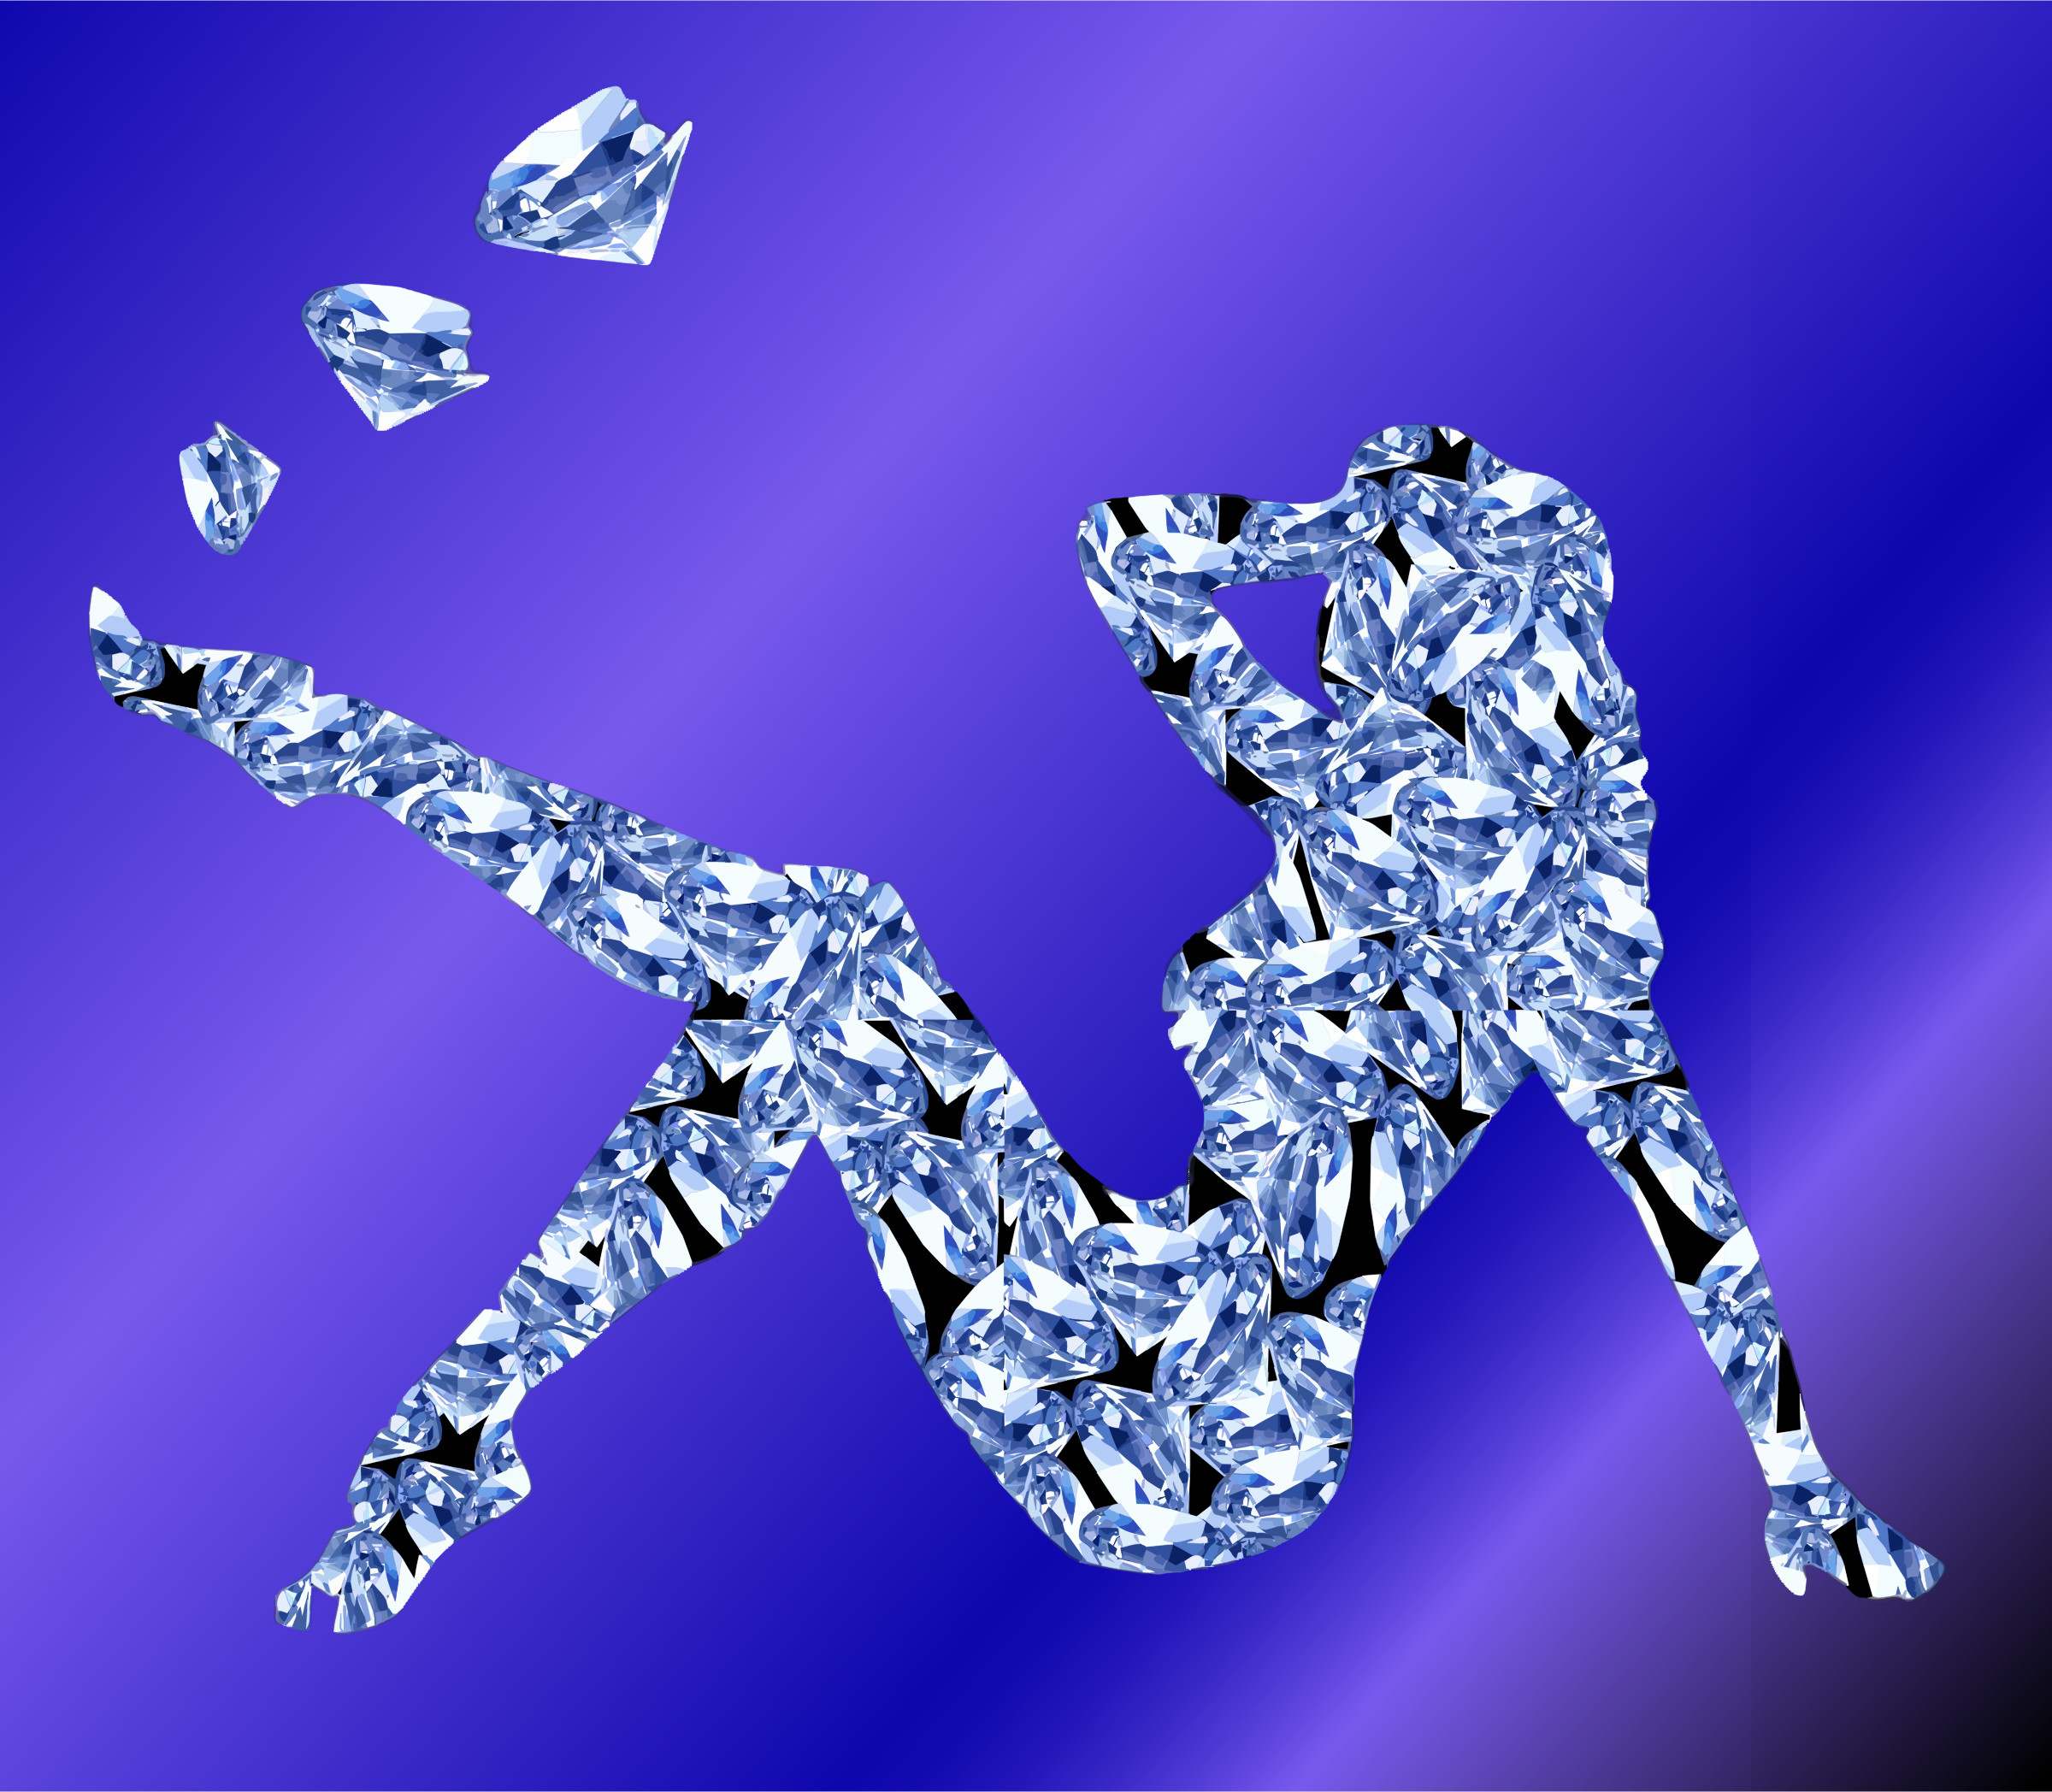 Diamond Background Images ·① WallpaperTag